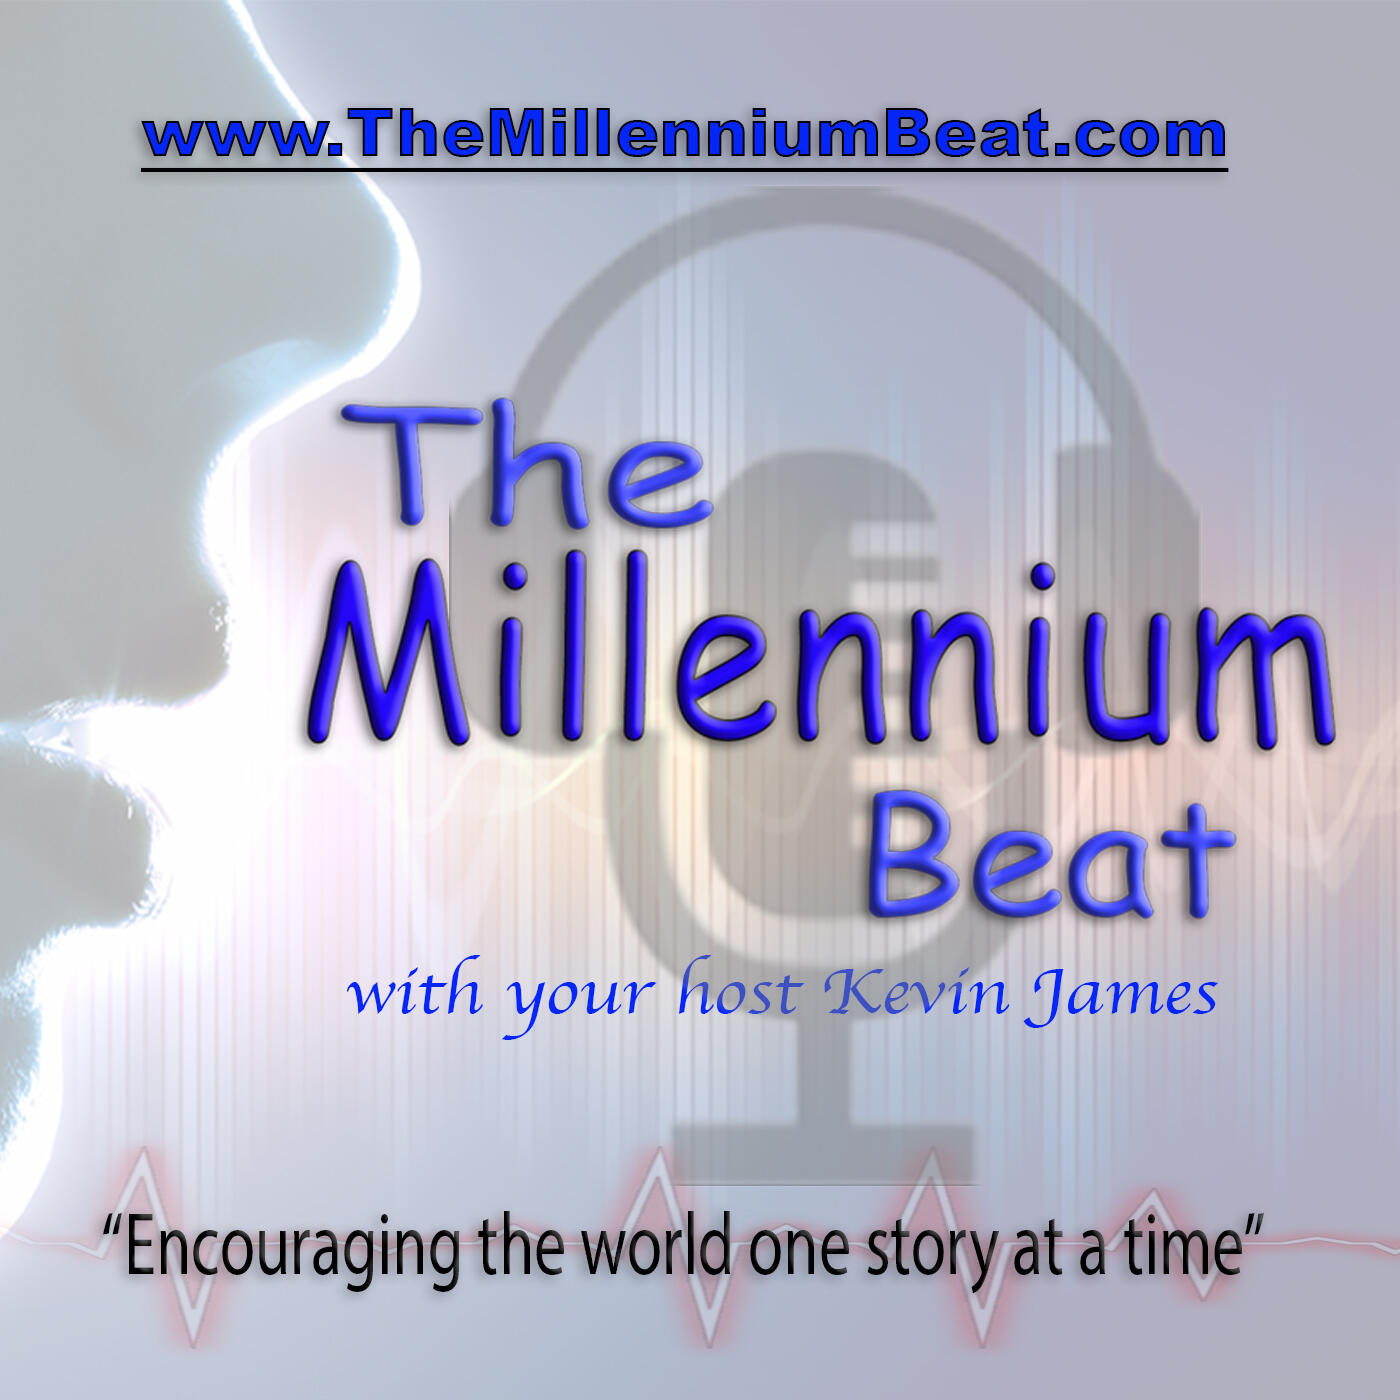 The Millennium Beat's Podcast